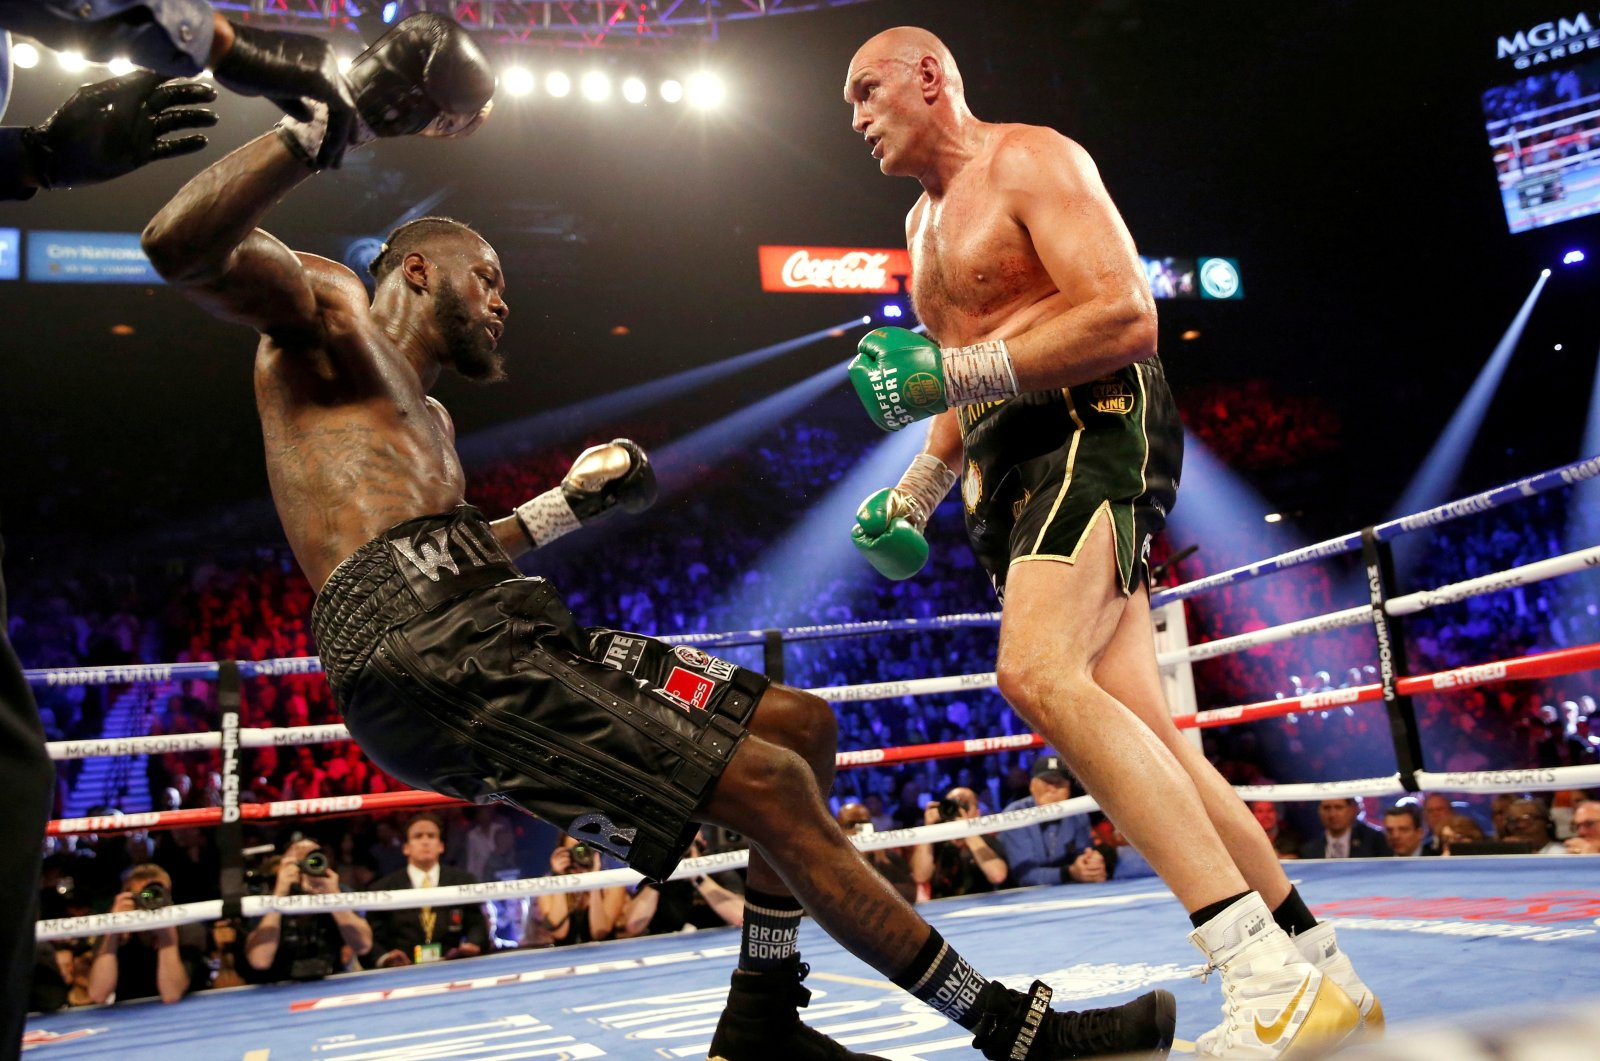 Tyson Fury knocks down Deontay Wilder during the WBC Heavyweight Title fight at the Grand Garden Arena at MGM Grand, Las Vegas, U.S., Feb. 22, 2020. (Reuters Photo)